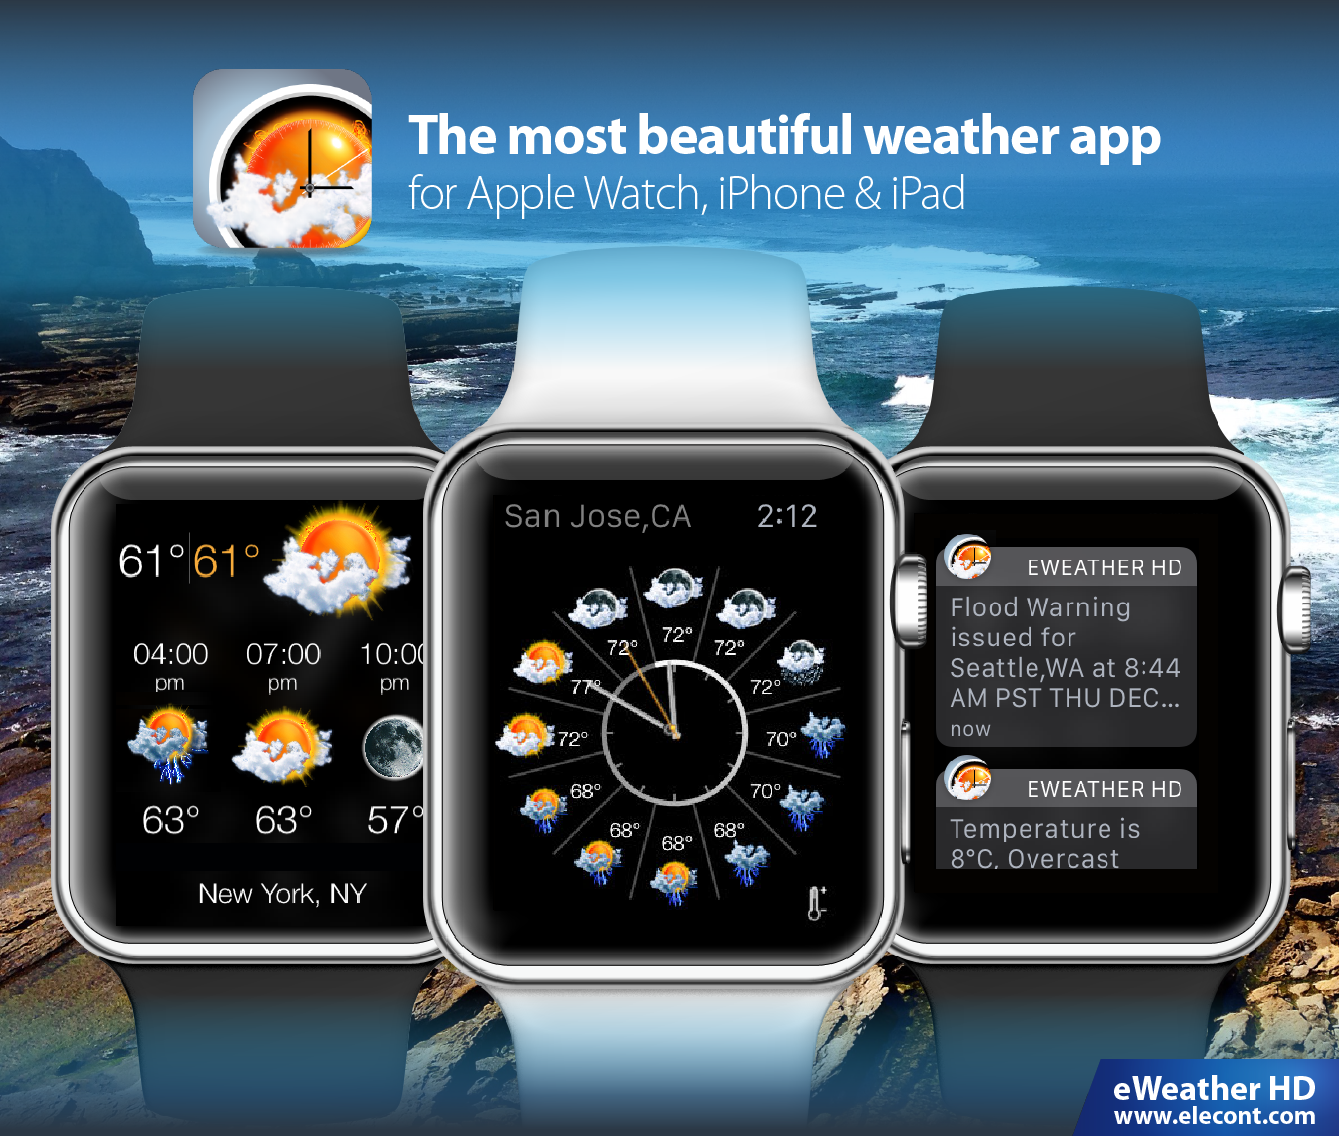 eWeather HD 3.6 for  Apple Watch- Severe weather alerts PUSH notifications, weather forecast, wind, rain, snow, temperature of air, humidity, dew-point, uv-index, geomagnetic activity and more